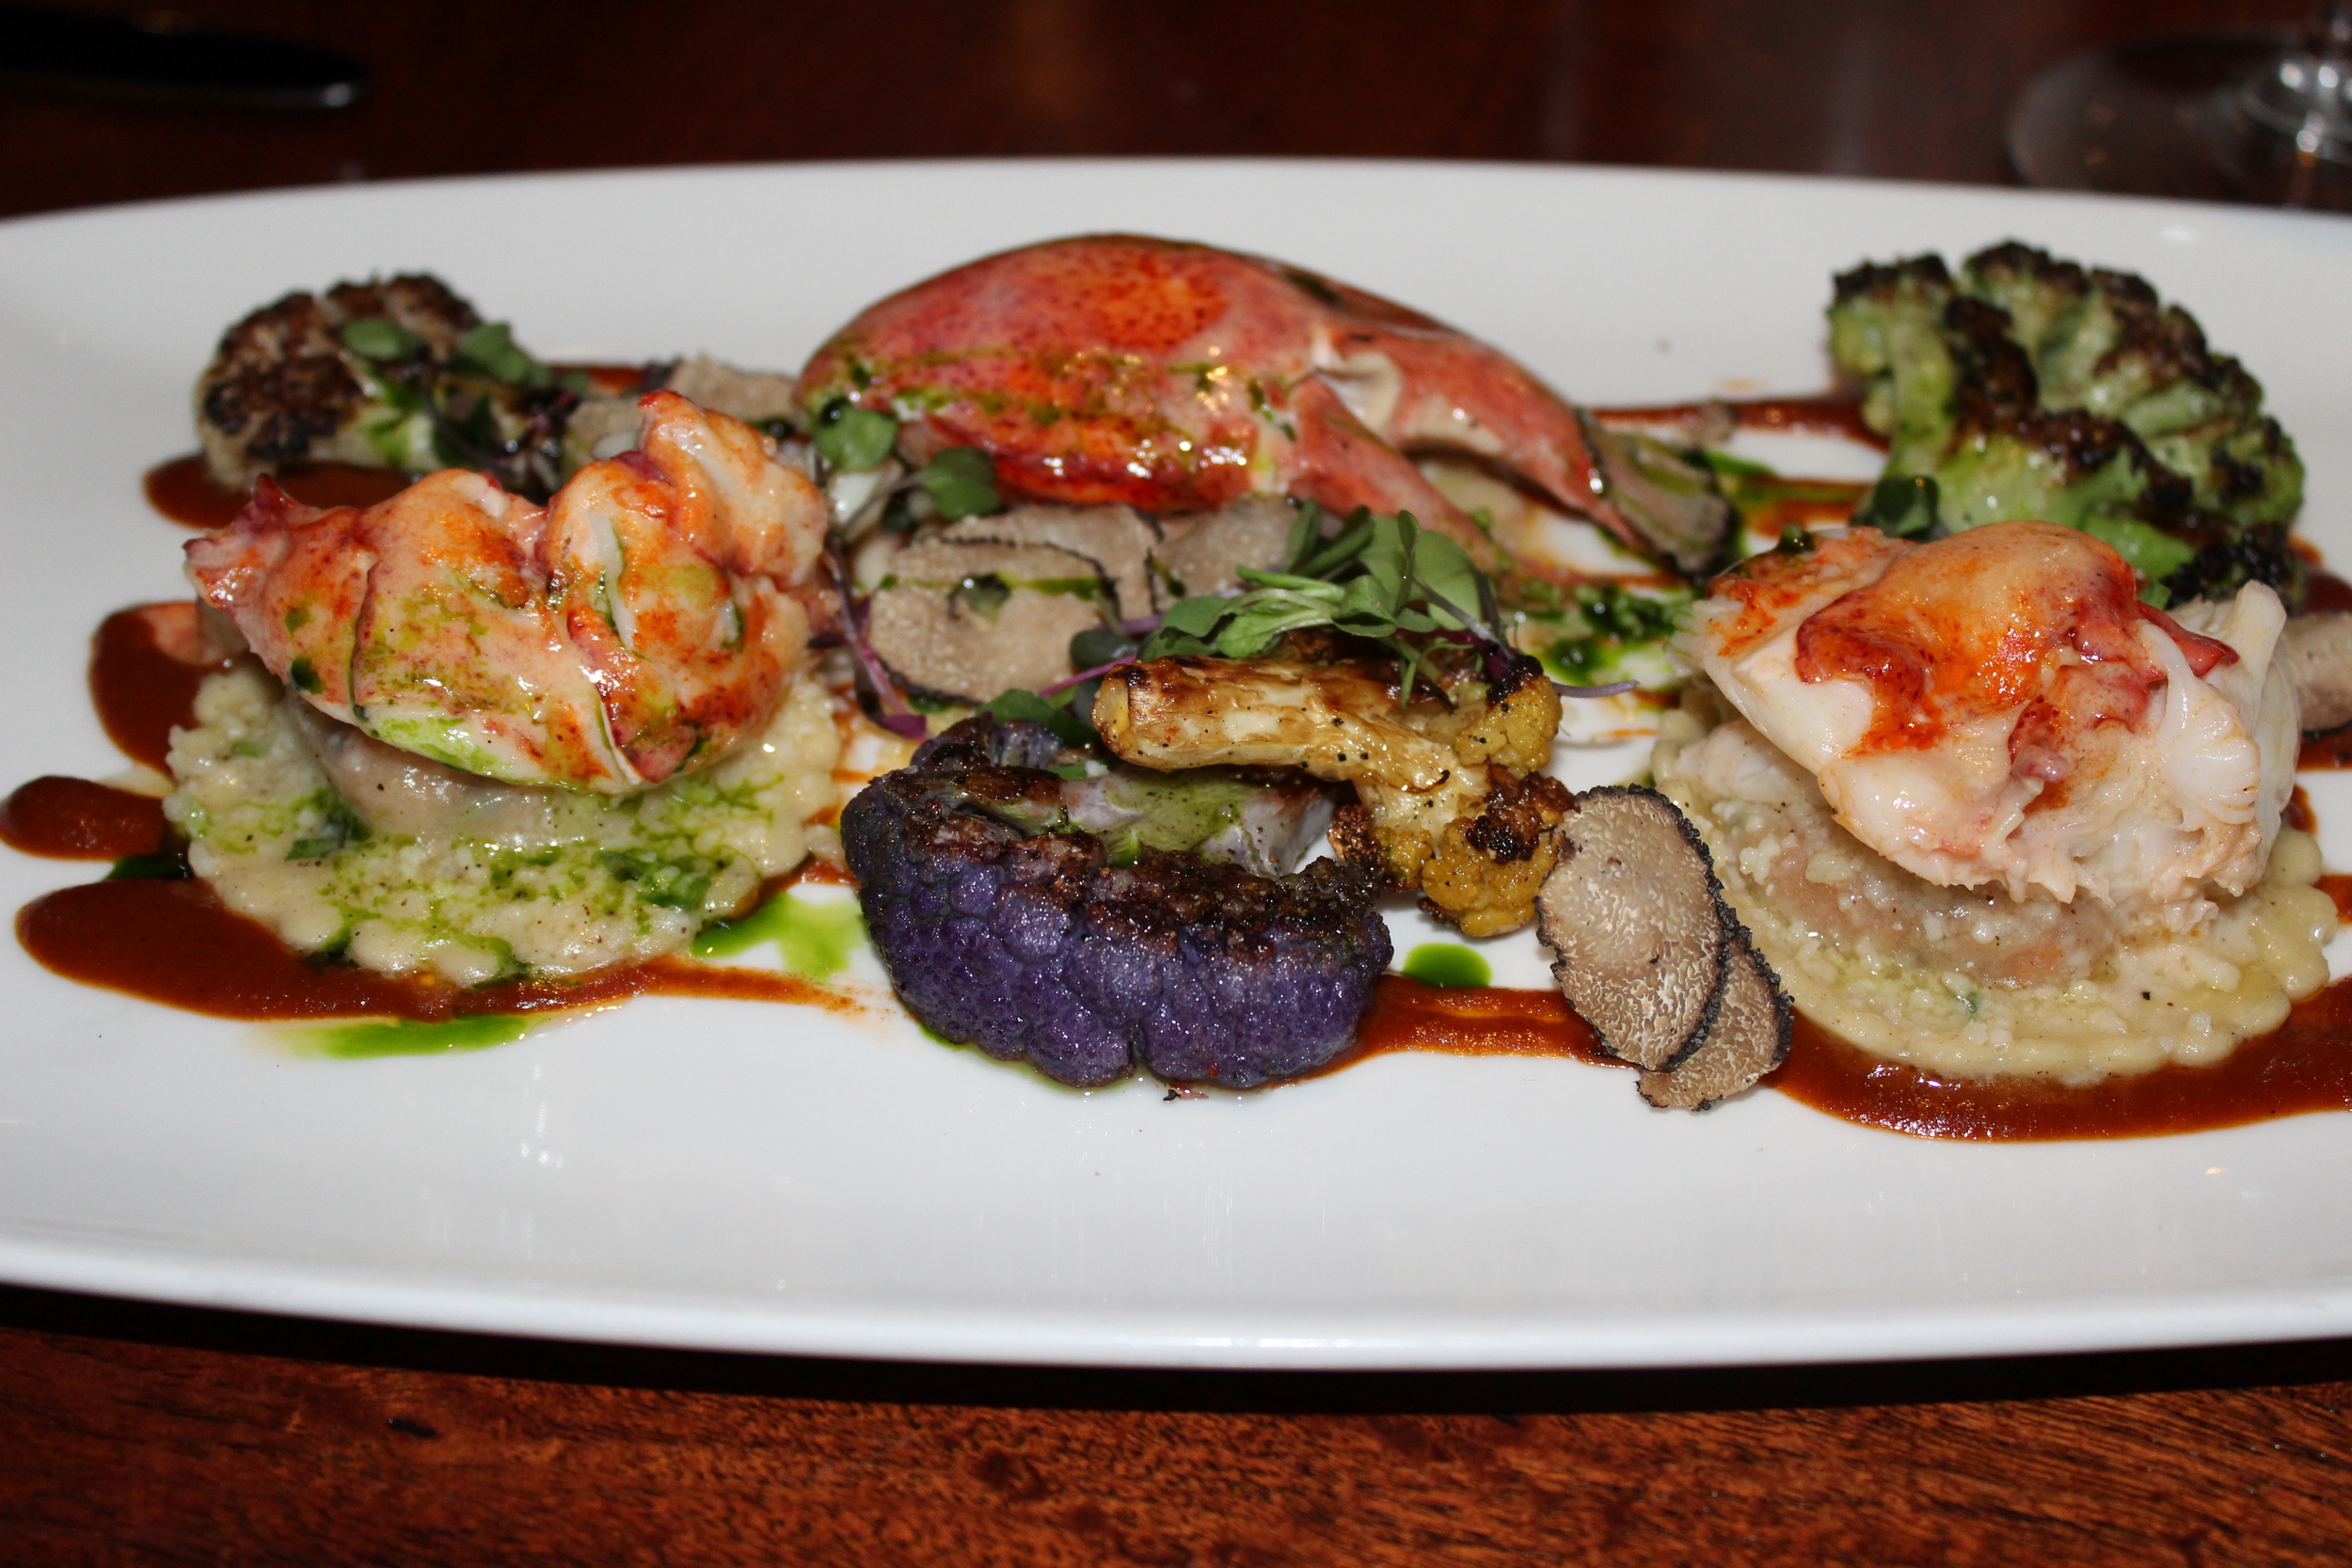 Brandy-Vanilla Poached Maine Lobster with Lobster and Parmesan Raviolis, Charred Rainbow Cauliflower, Lobster Beurre Blanc, and Truffles.